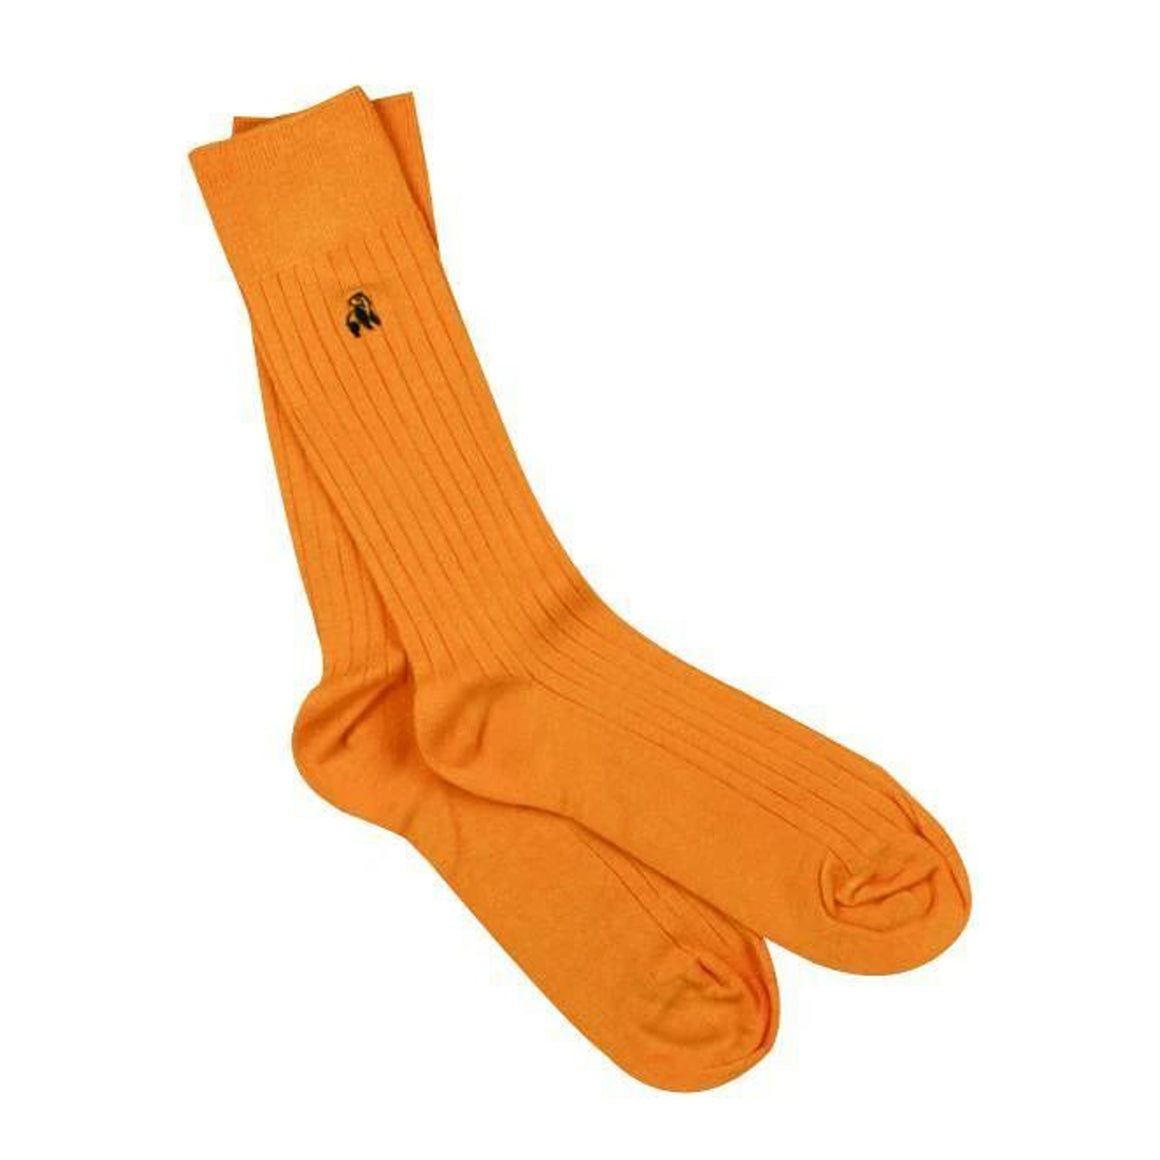 Bamboo Socks for Men in Tangerine Orange